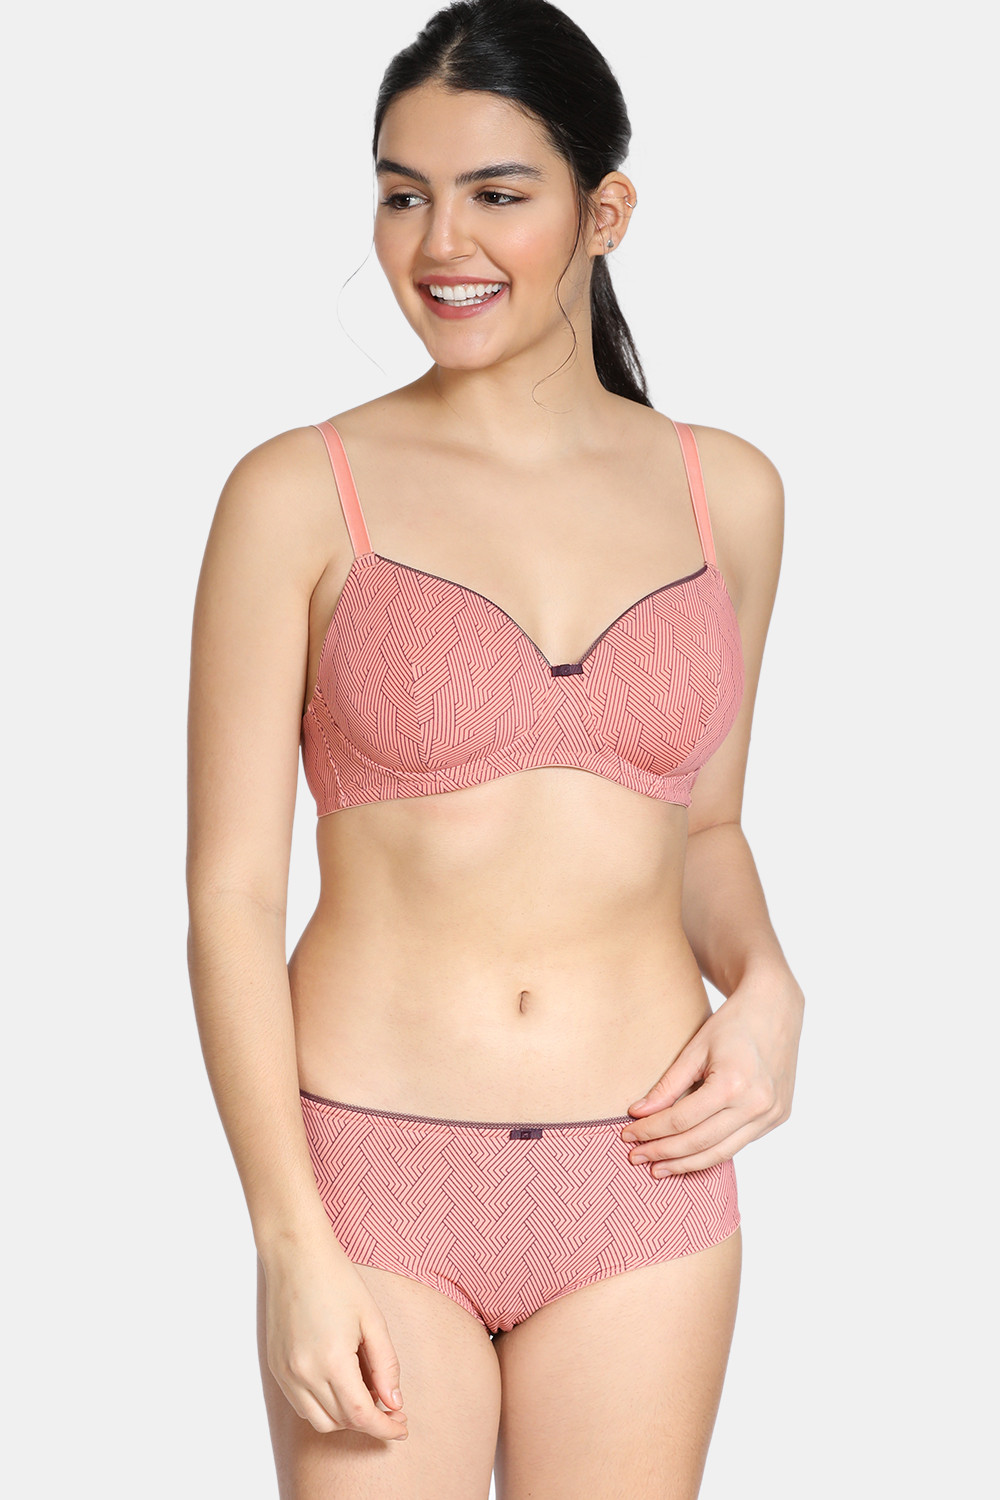 Buy Zivame Knotty Padded Non-Wired 3/4th Coverage T-Shirt Bra With Low Rise Hipster Panty - Lobster Bisque